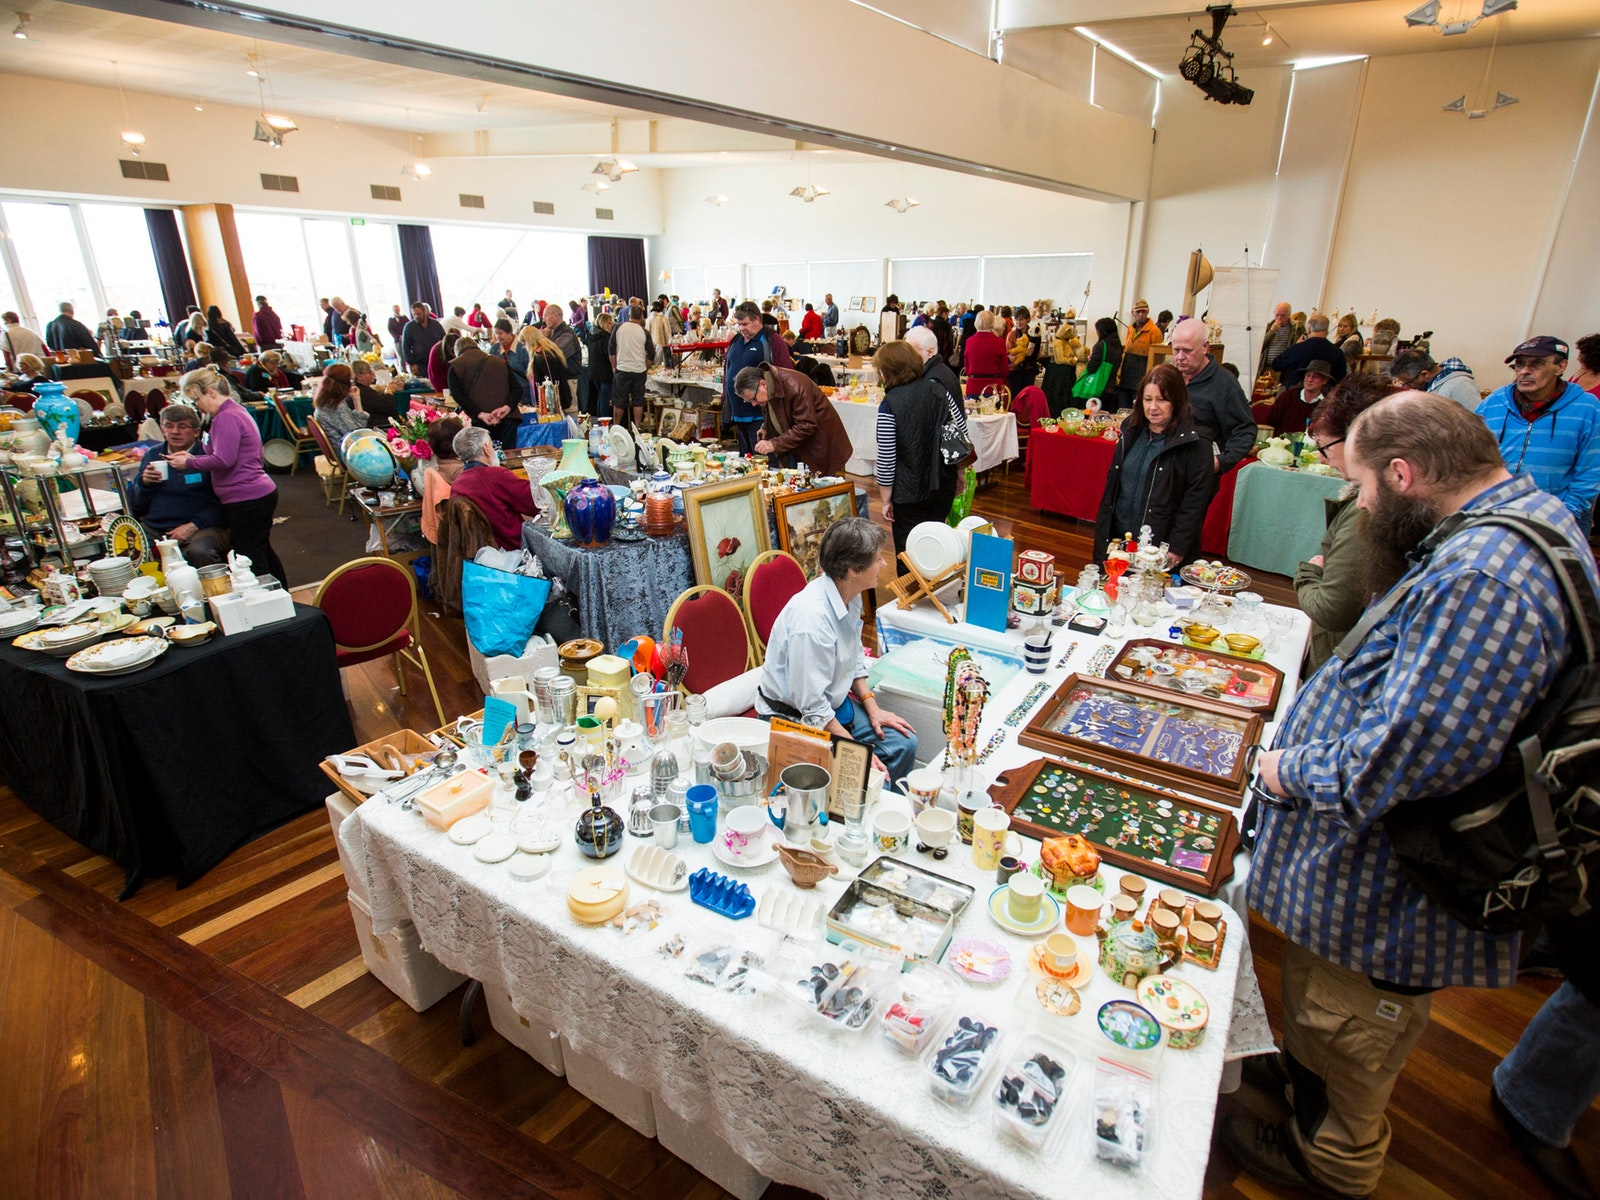 A view of some of the 44 stalls in the main hall